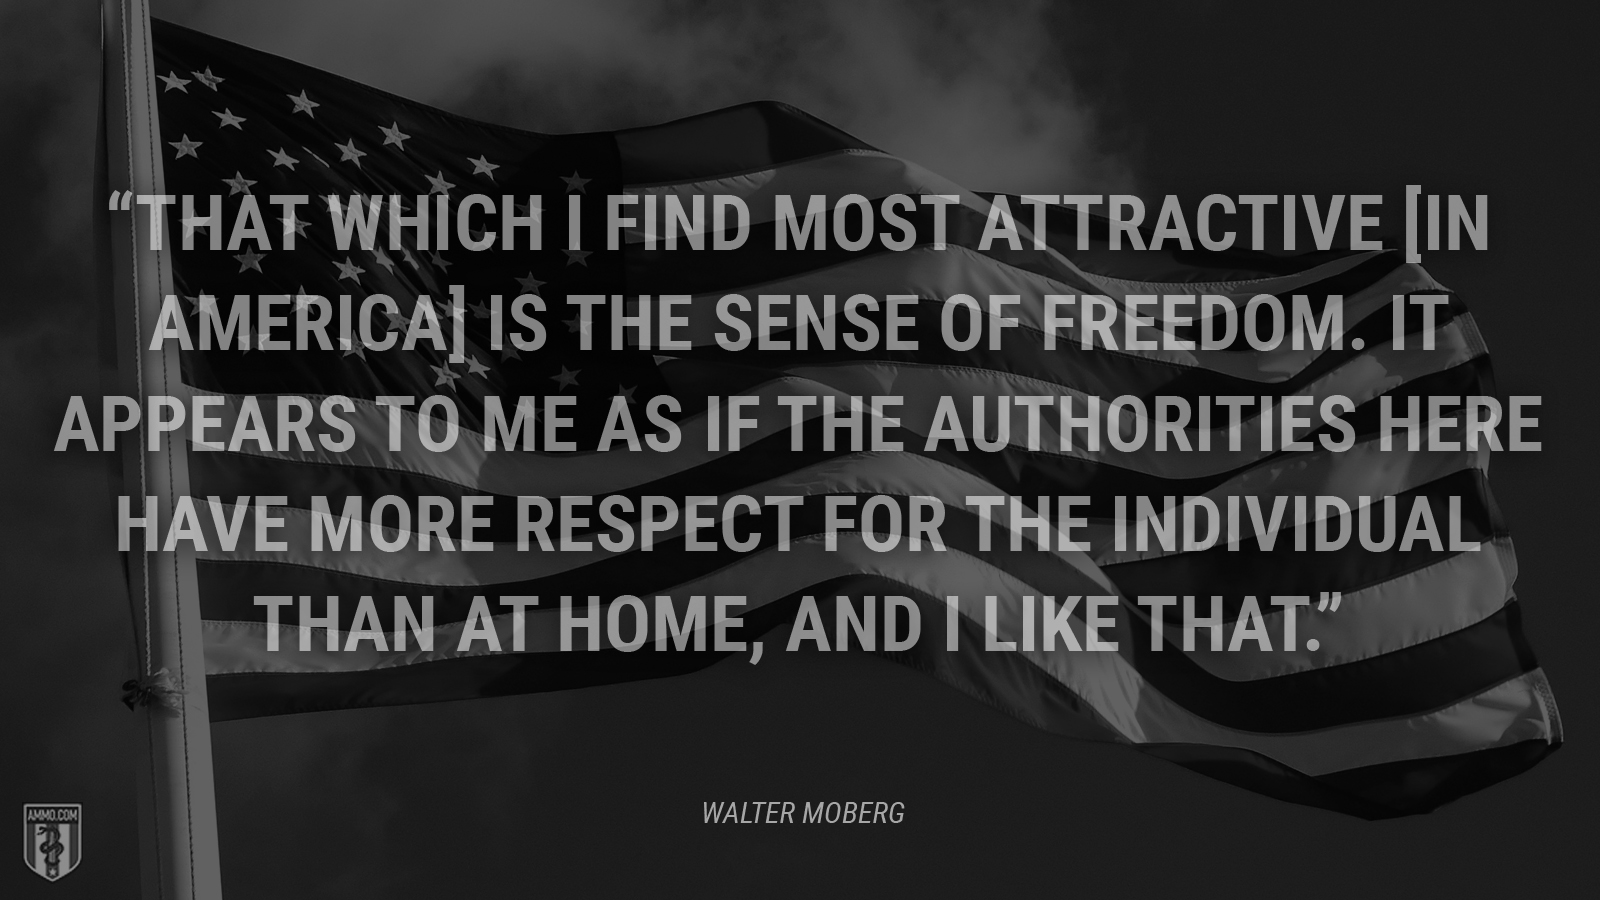 """That which I find most attractive [in America] is the sense of freedom. It appears to me as if the authorities here have more respect for the individual than at home, and I like that."" - Walter Moberg"